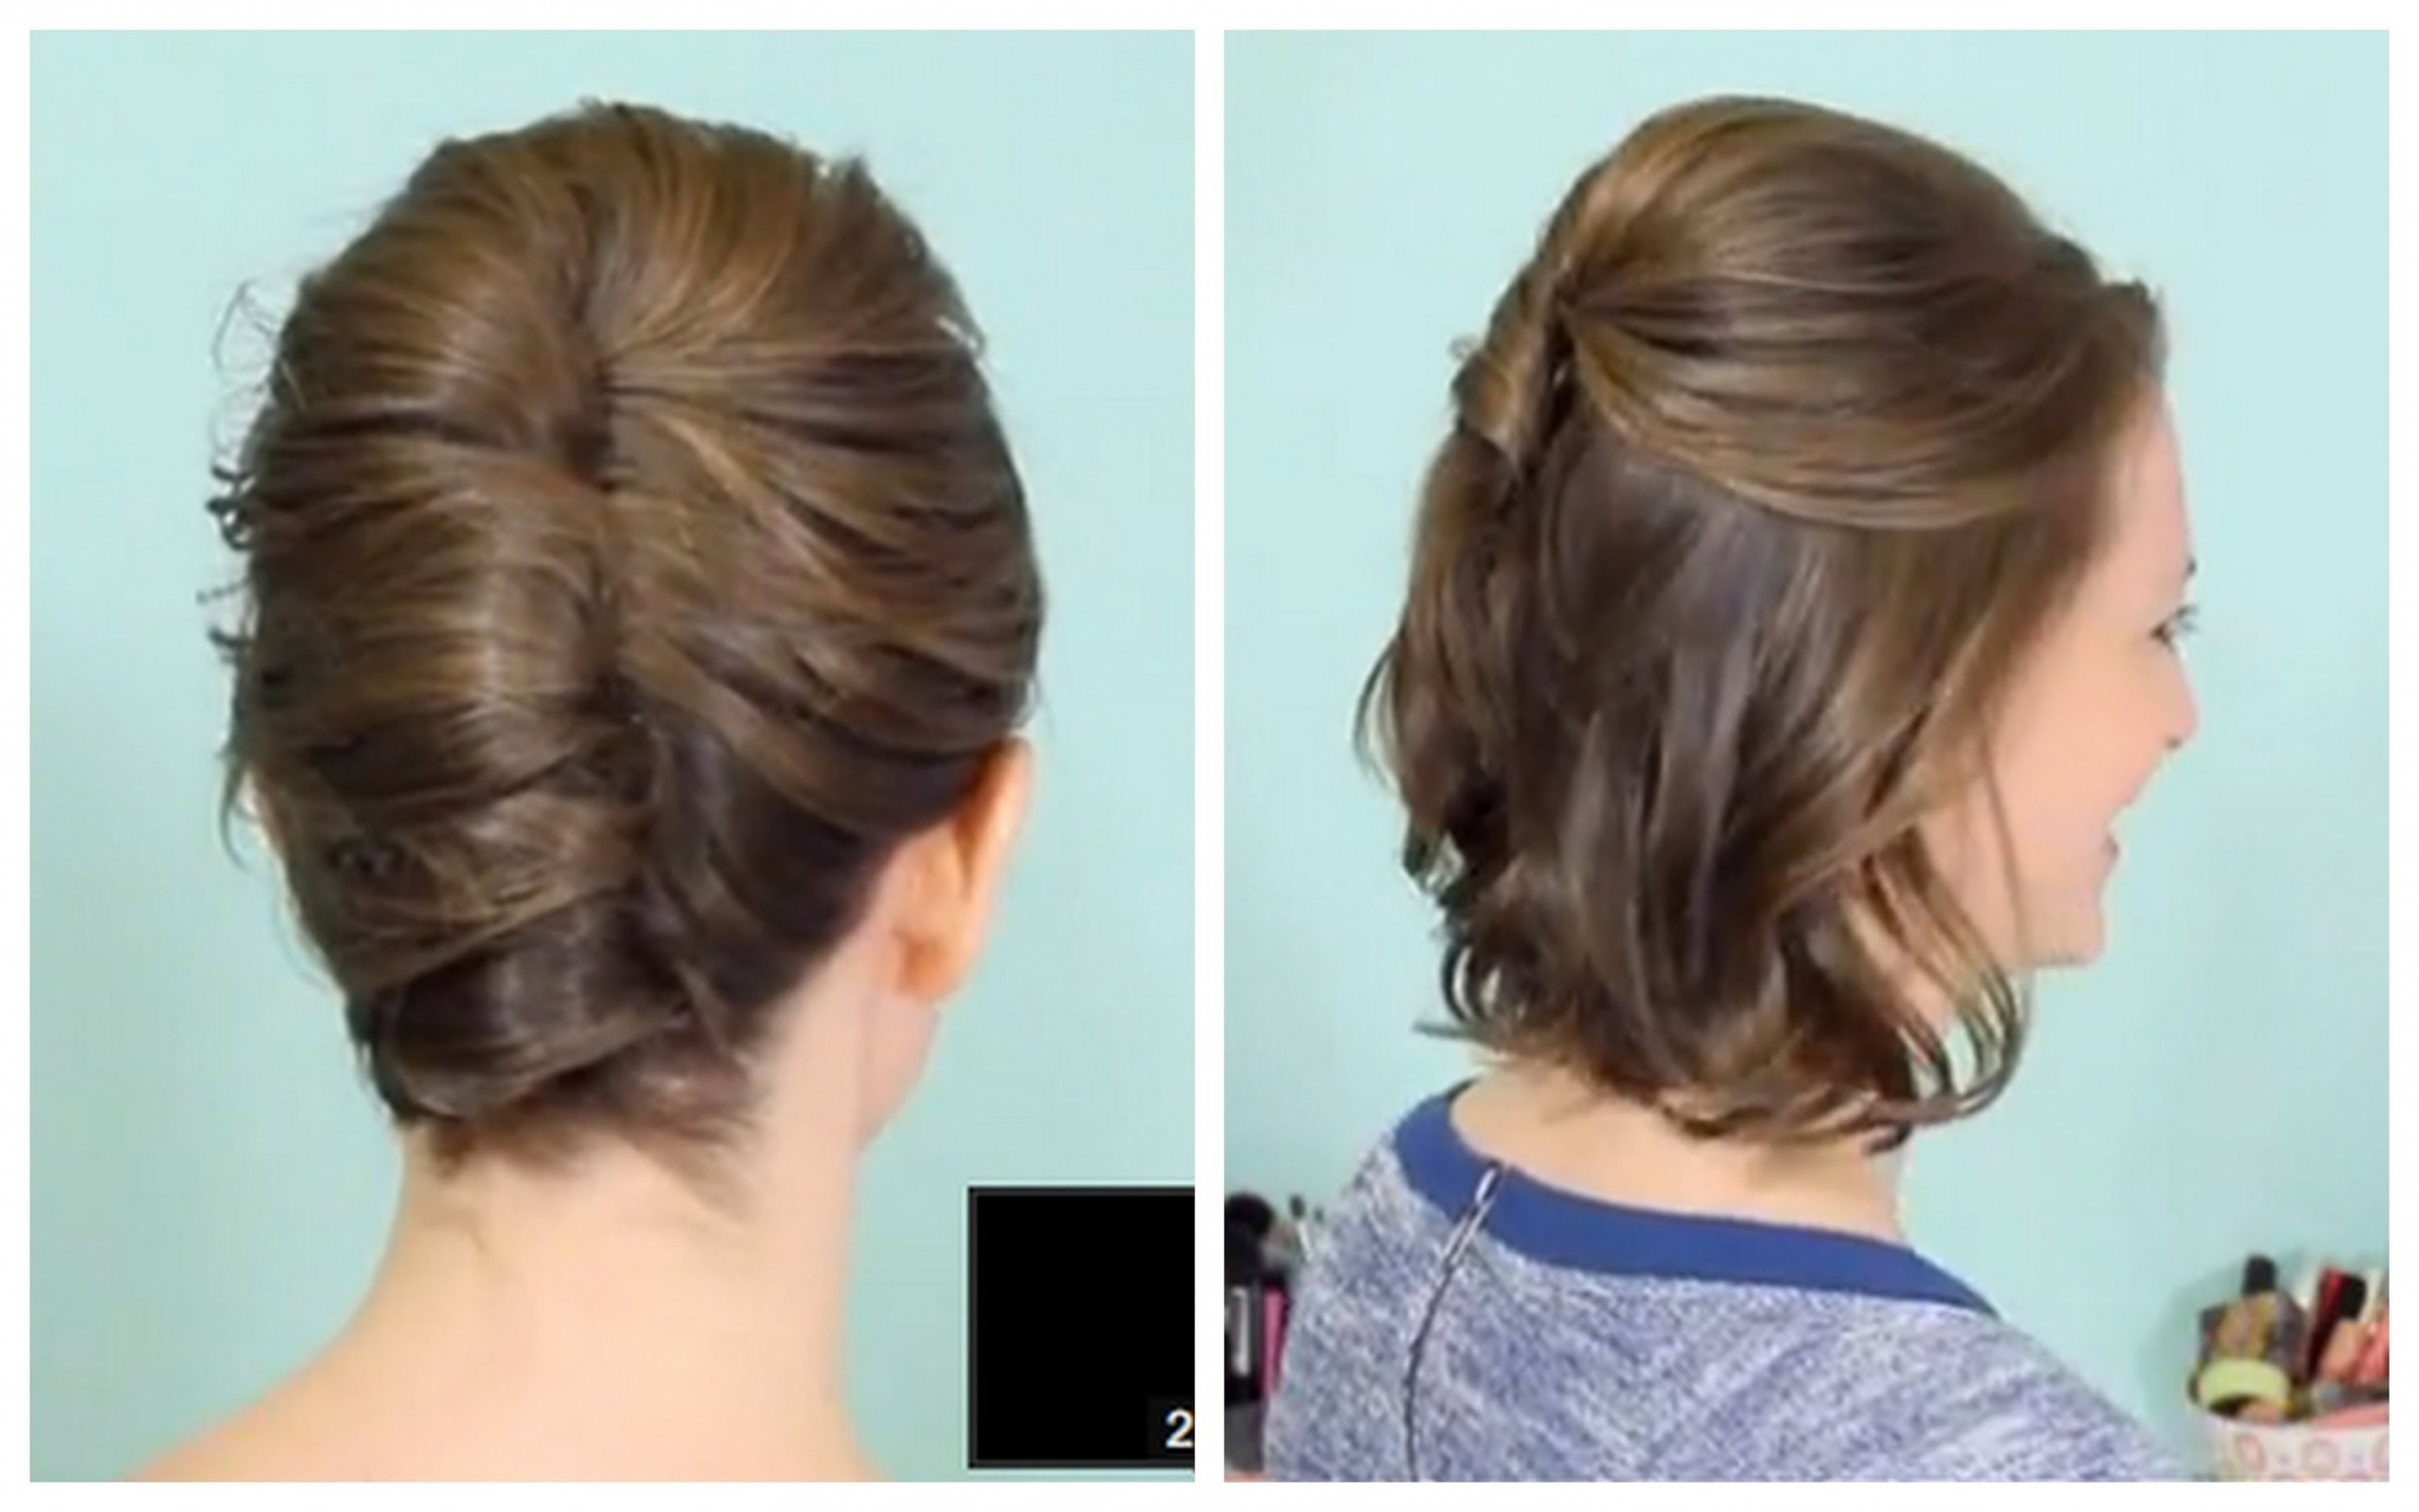 Updo Short Hairstyles French Twist Half Updo For Short Hair | Latest Inside French Twist Updo Hairstyles For Short Hair (View 6 of 15)